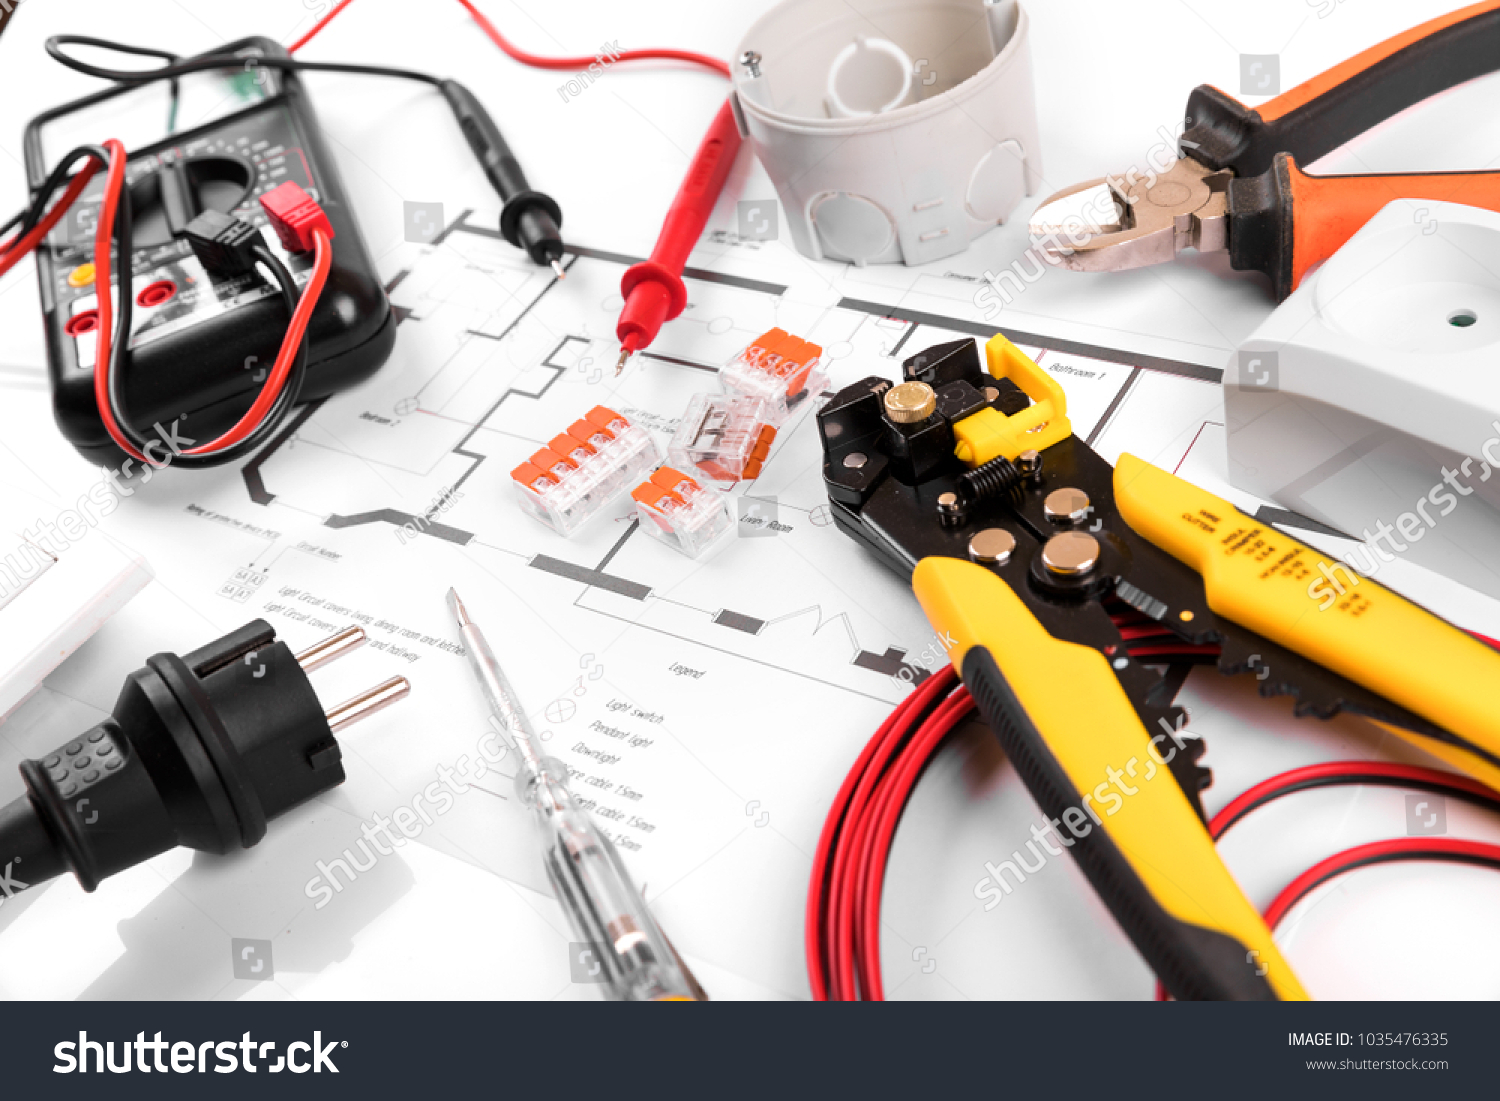 electrical tools and equipment on house wiring plan